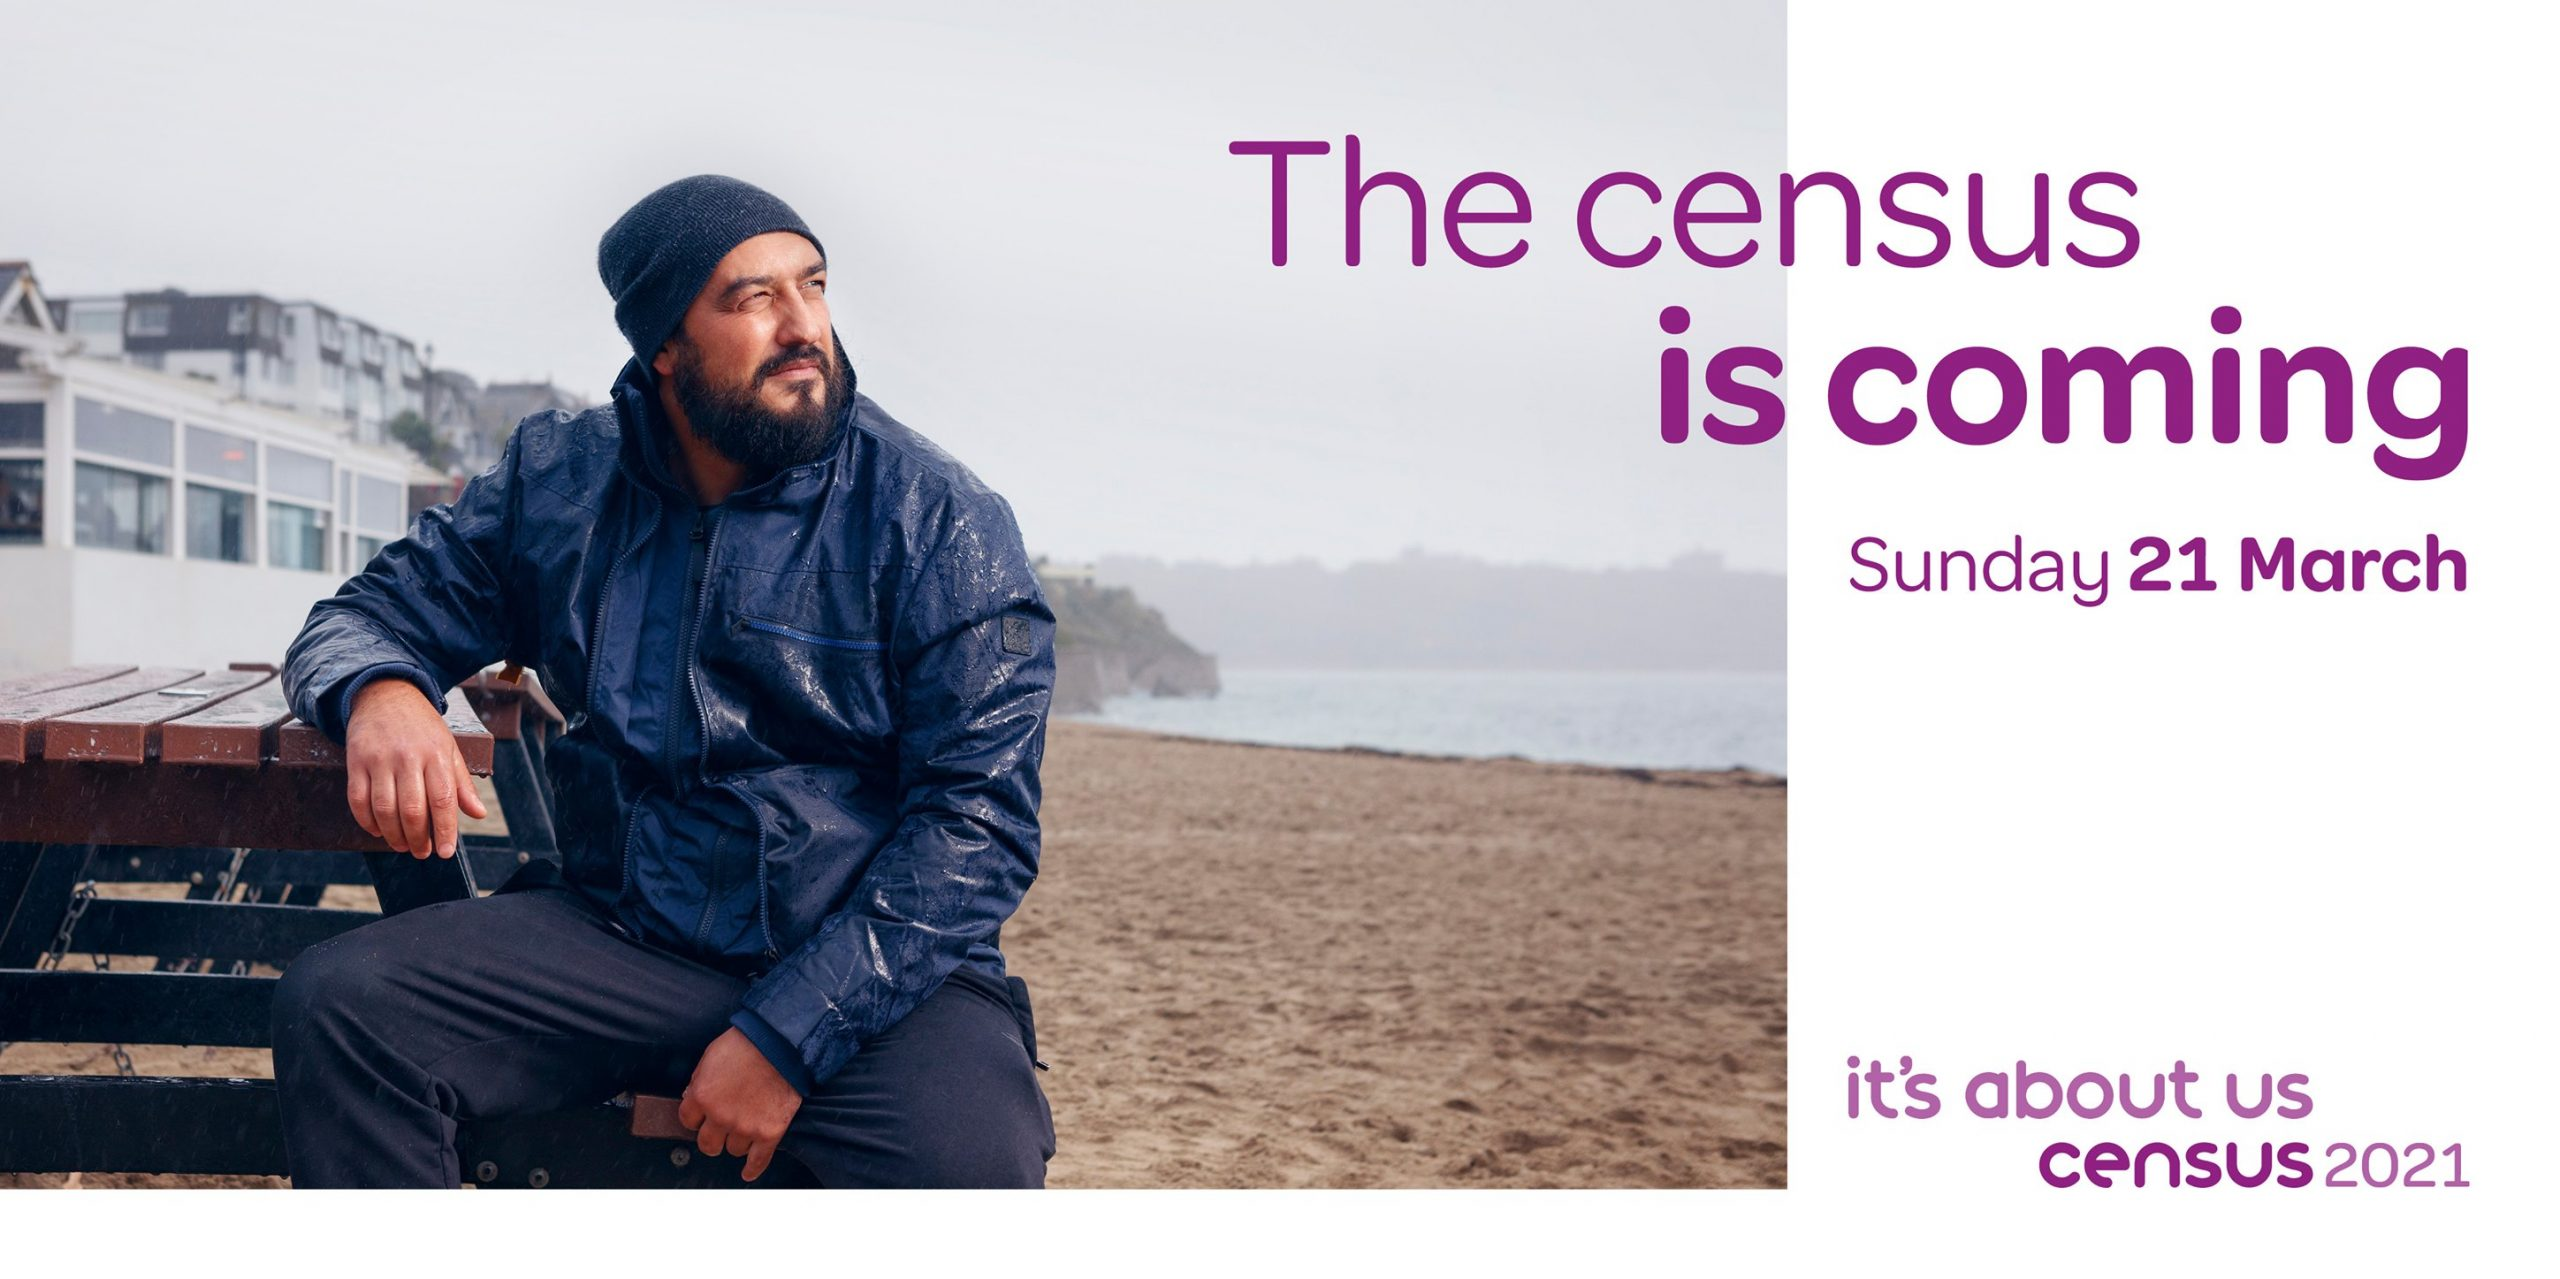 Poster of Census - The census is coming (21st March) with image of man looking away from camera